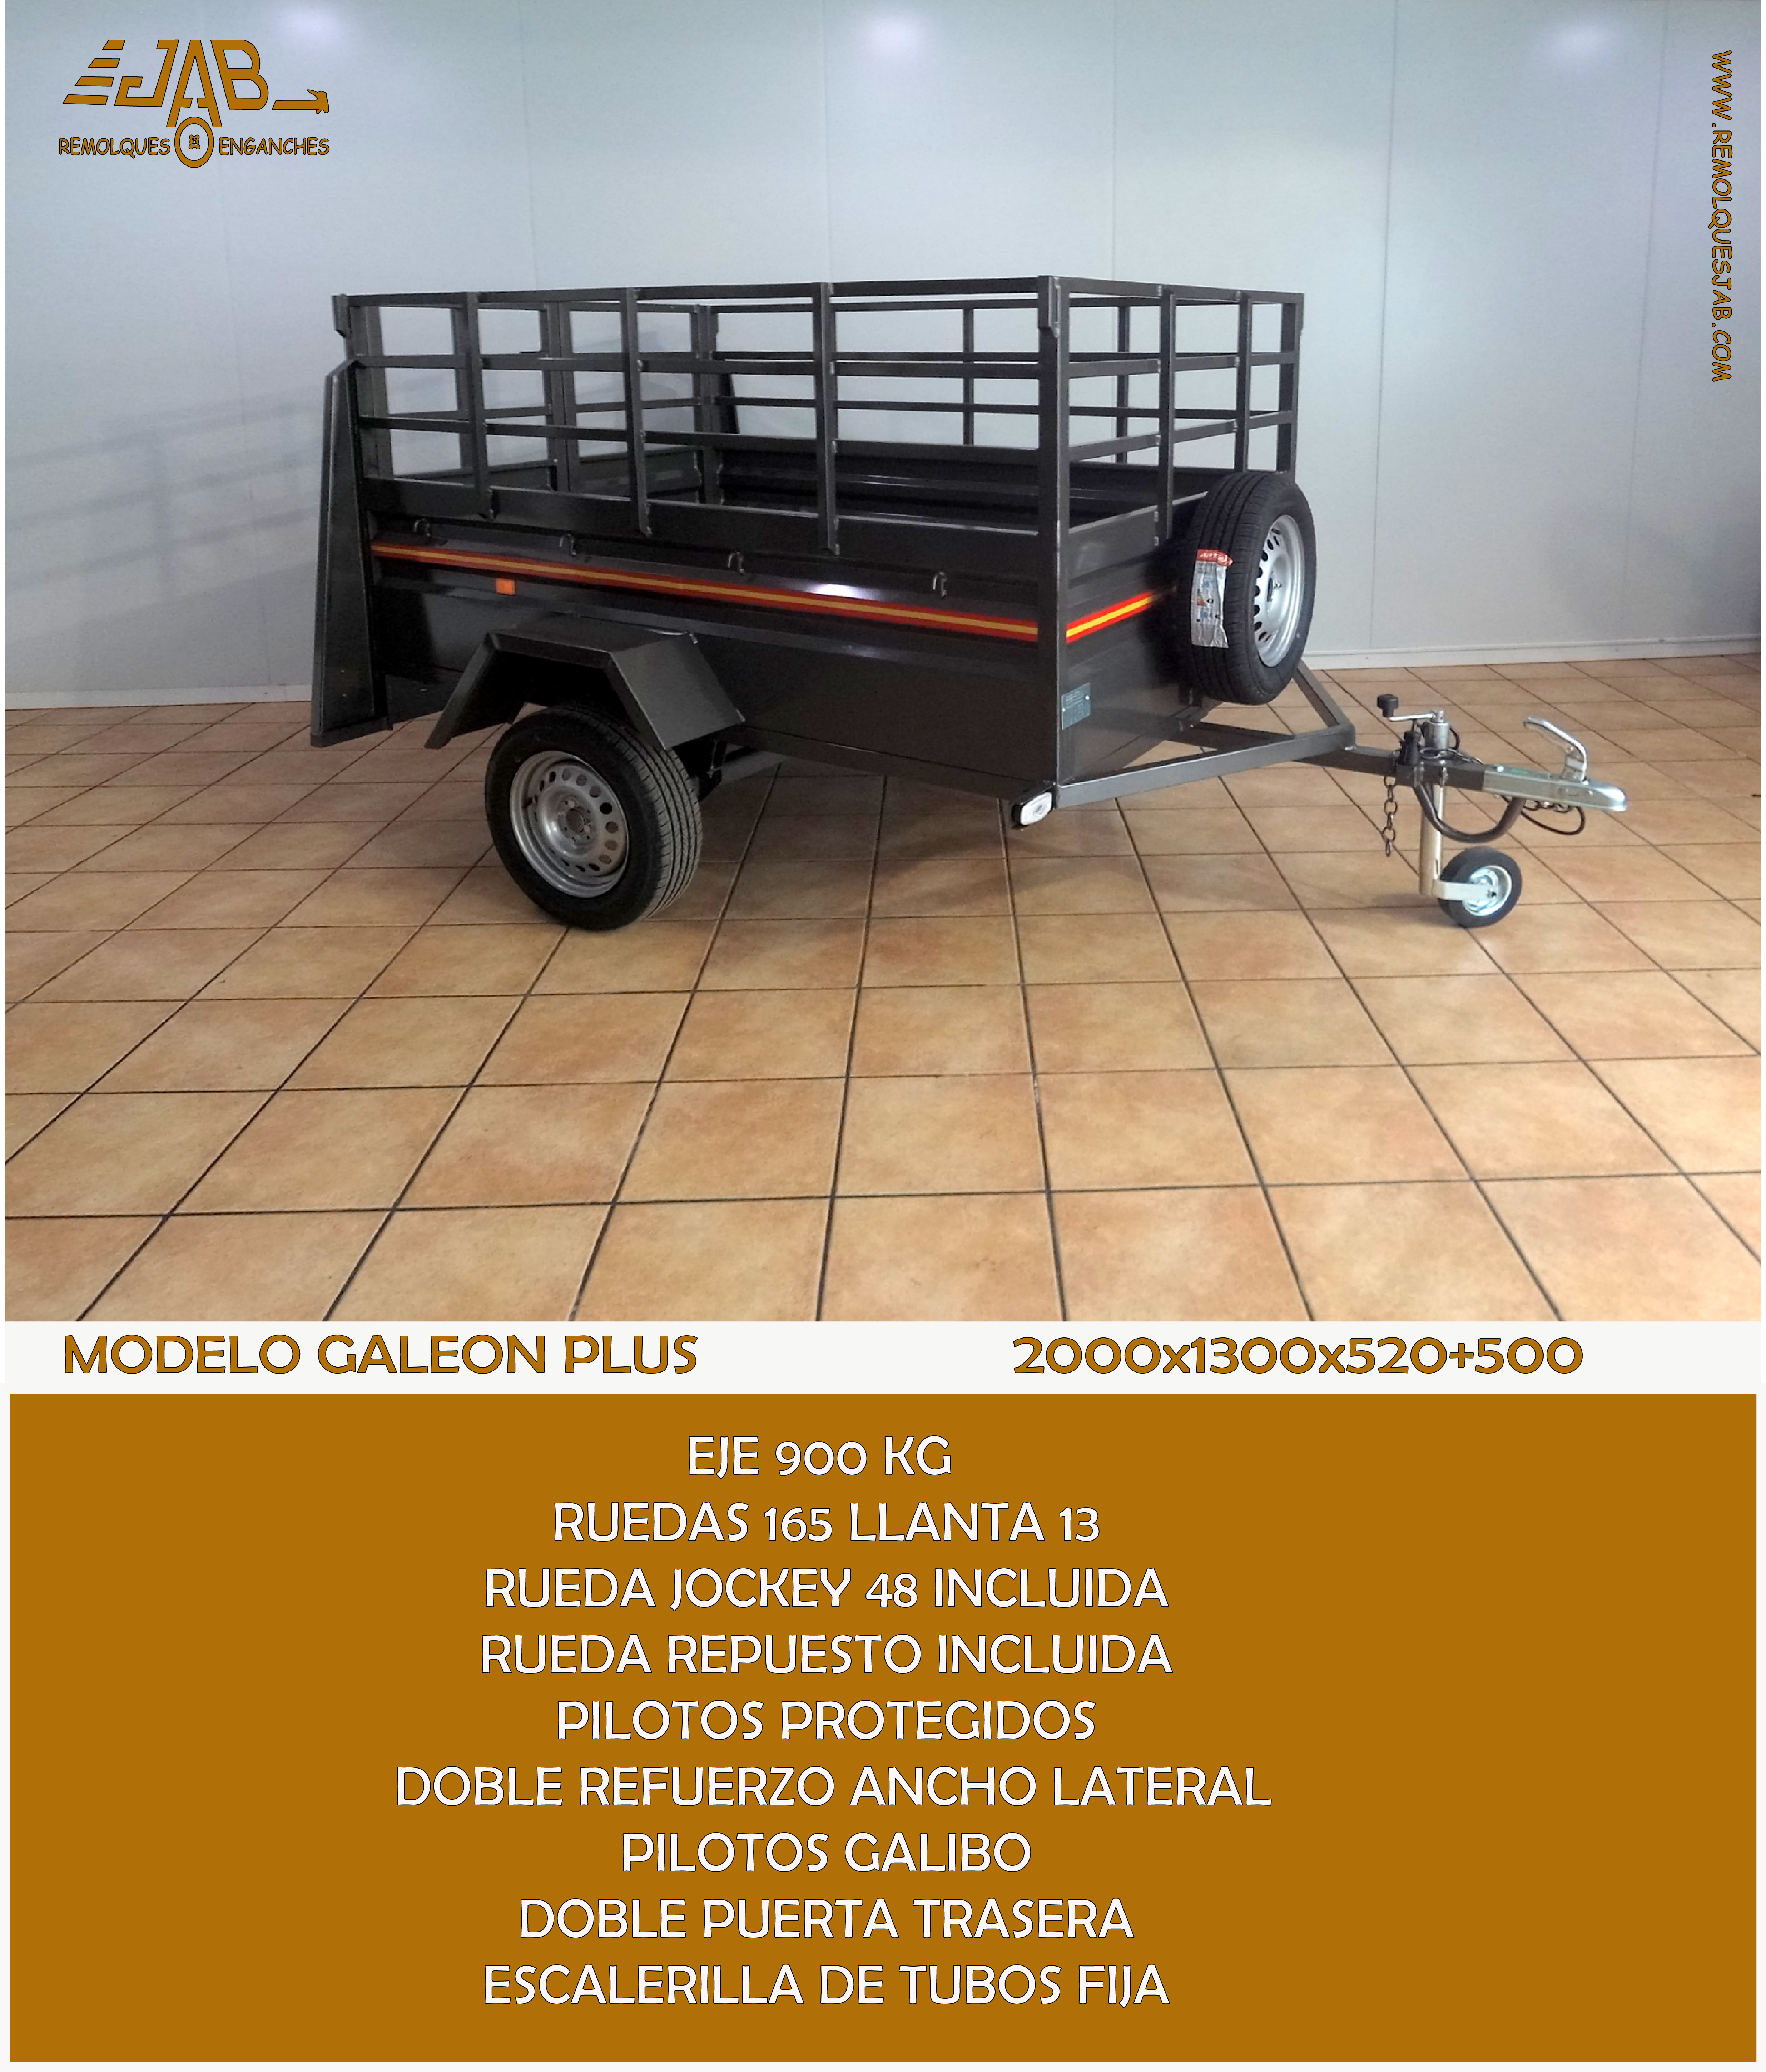 MODELO ECONOMIC GALEON PLUS WEB